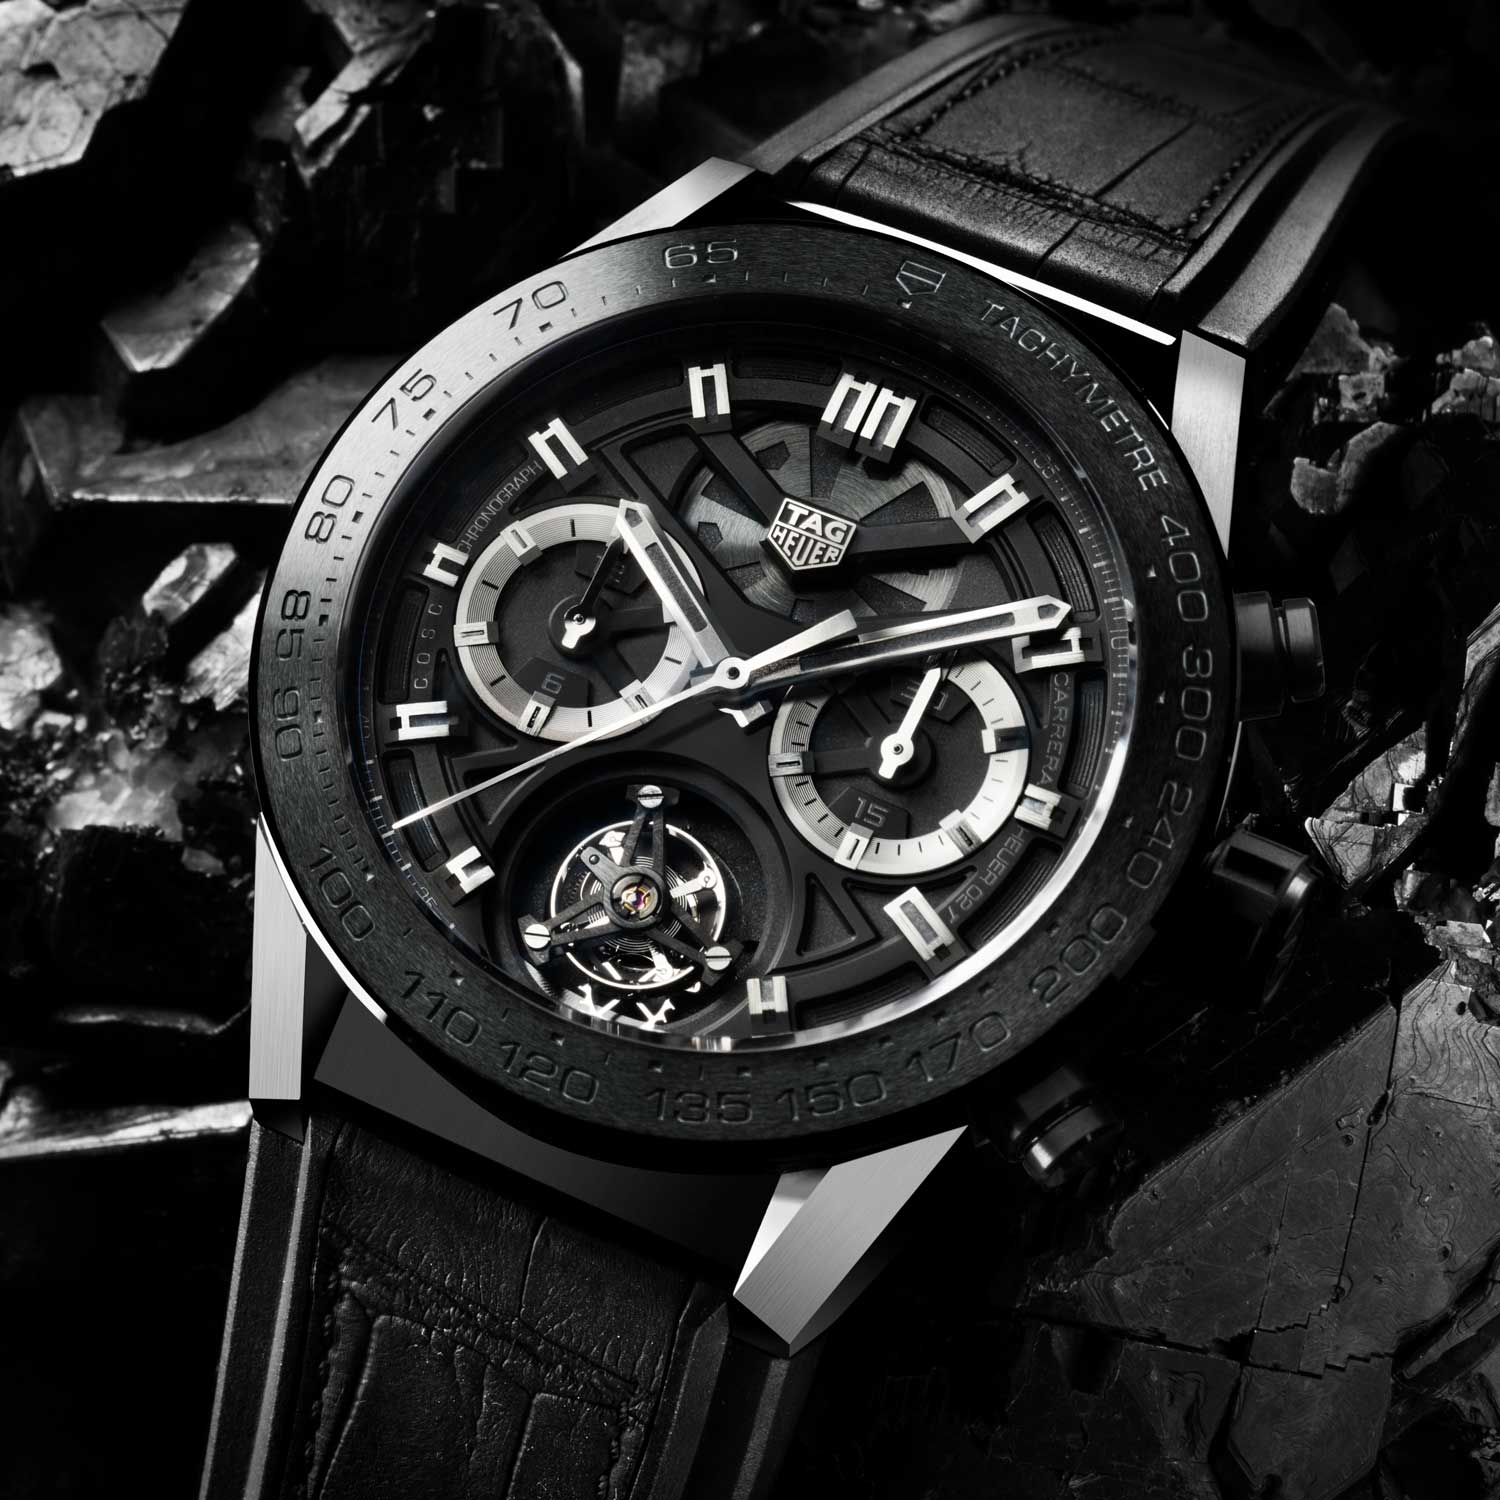 The 2016 launch version of the Heuer 02T in grade 5 titanium (45mm) priced under 15,000 CHF